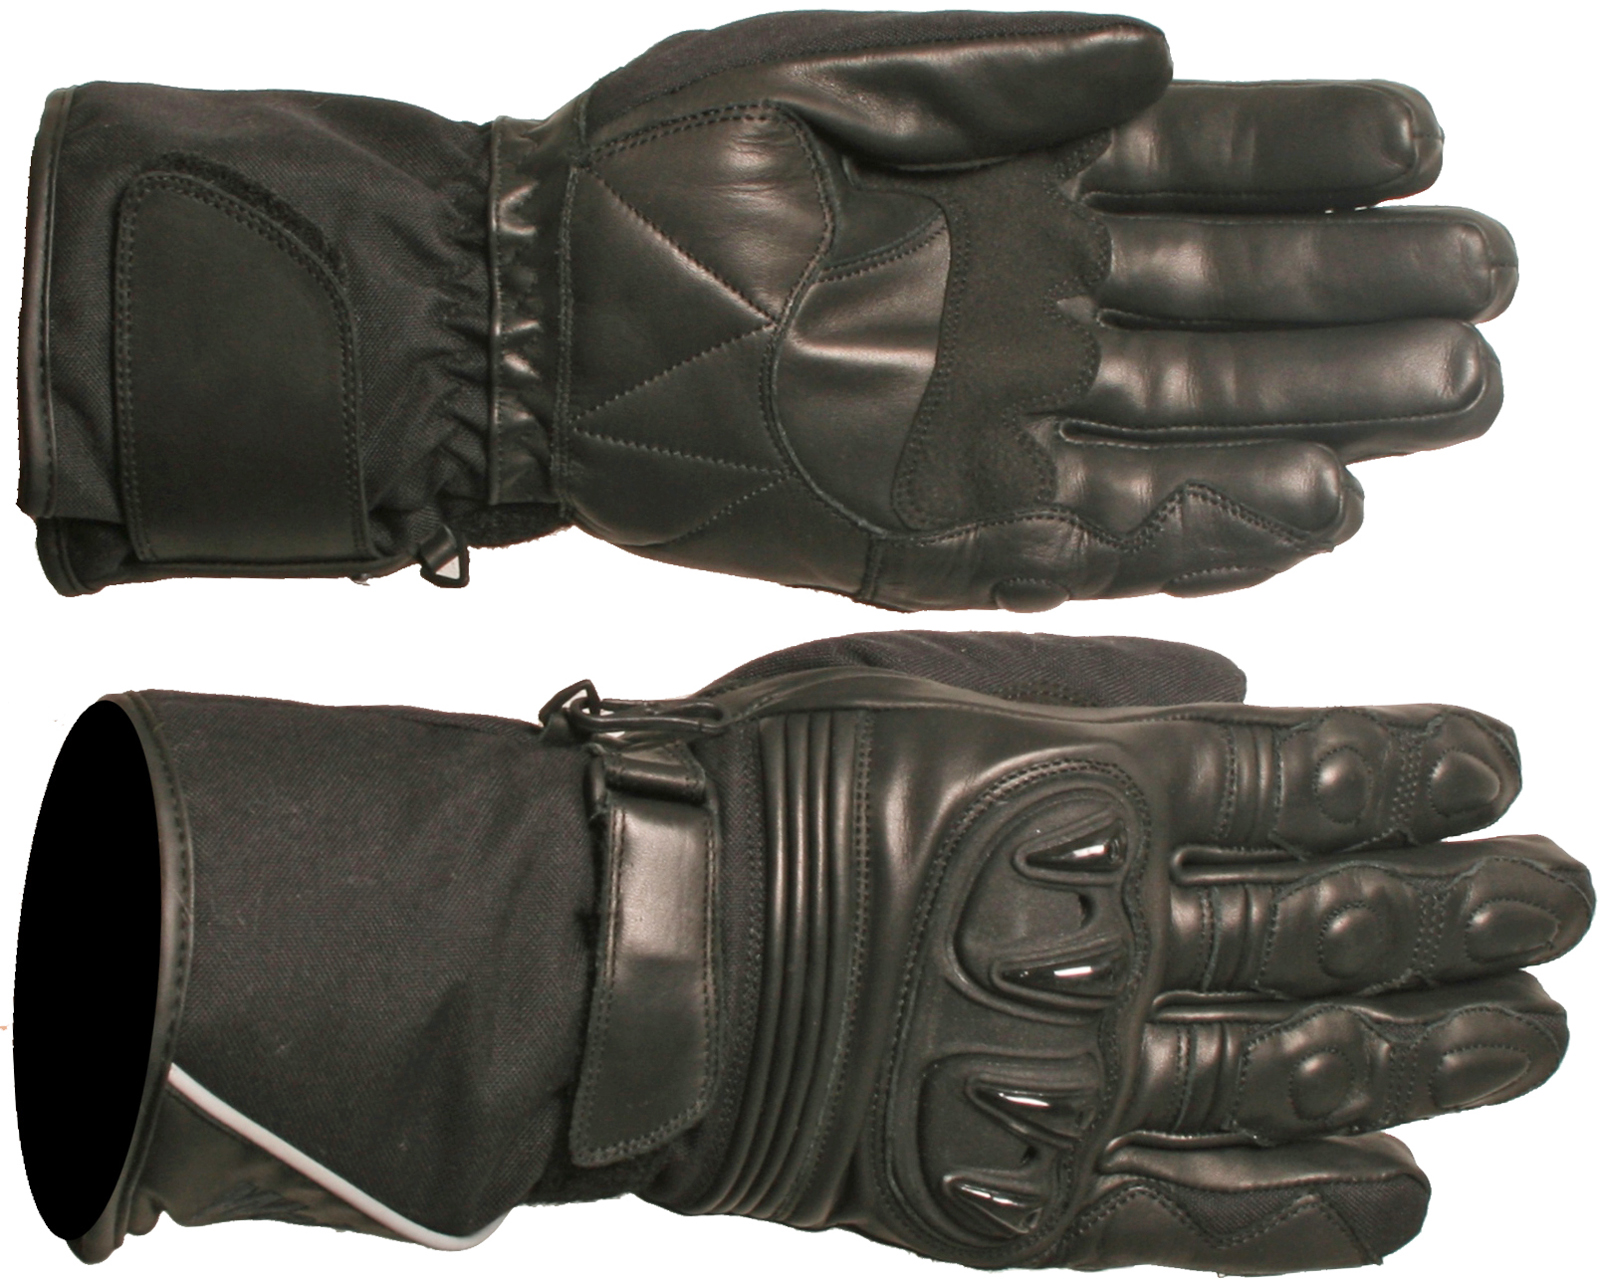 New Kit: Weise Lima motorcycling gloves